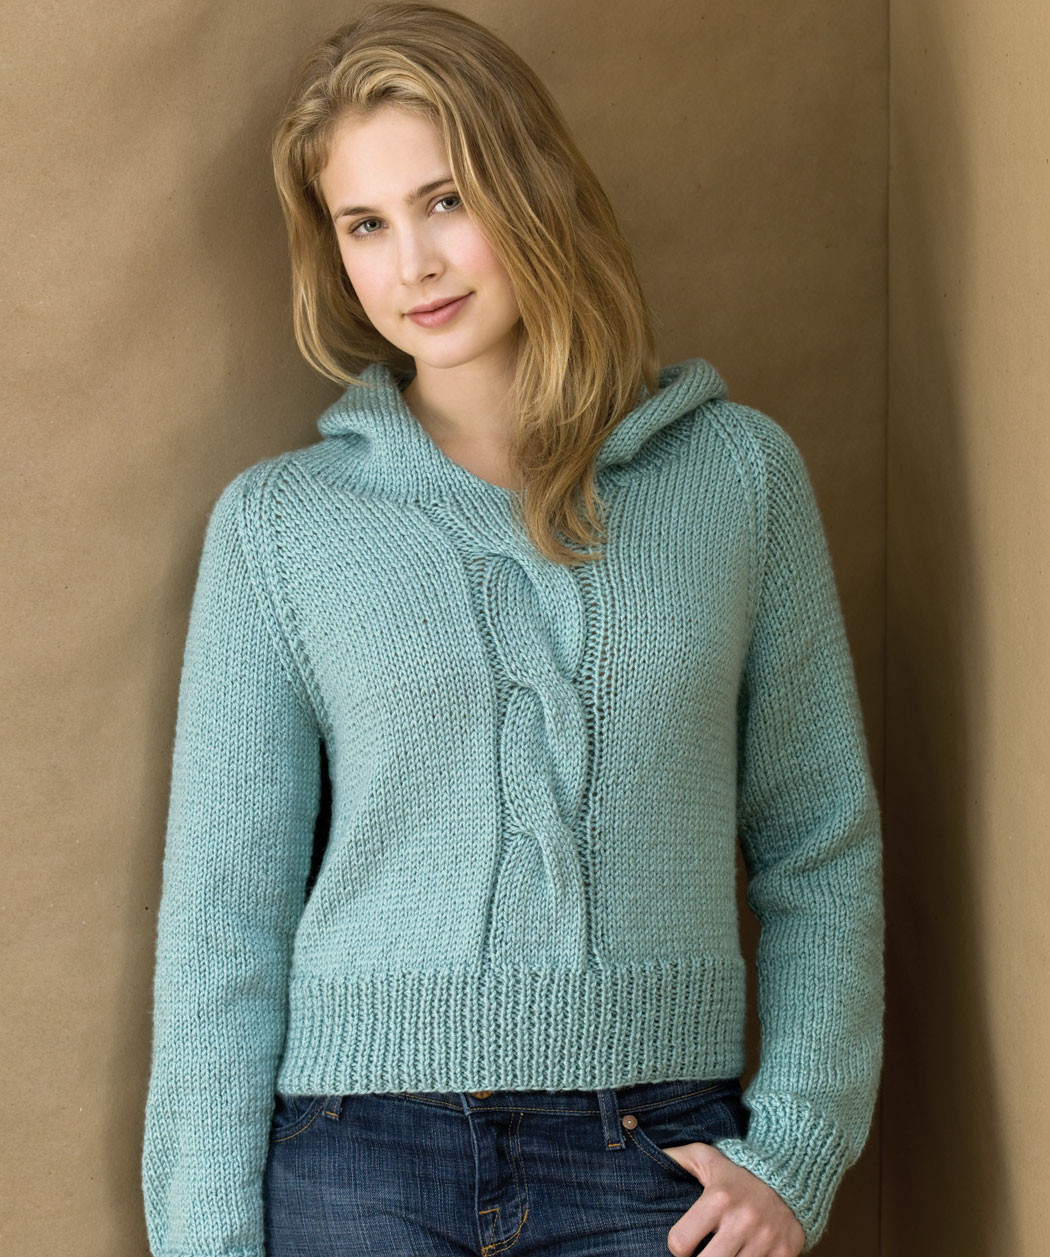 Fresh Cable Knit Sweater Patterns Cable Knit Sweater Pattern Of Lovely 42 Images Cable Knit Sweater Pattern